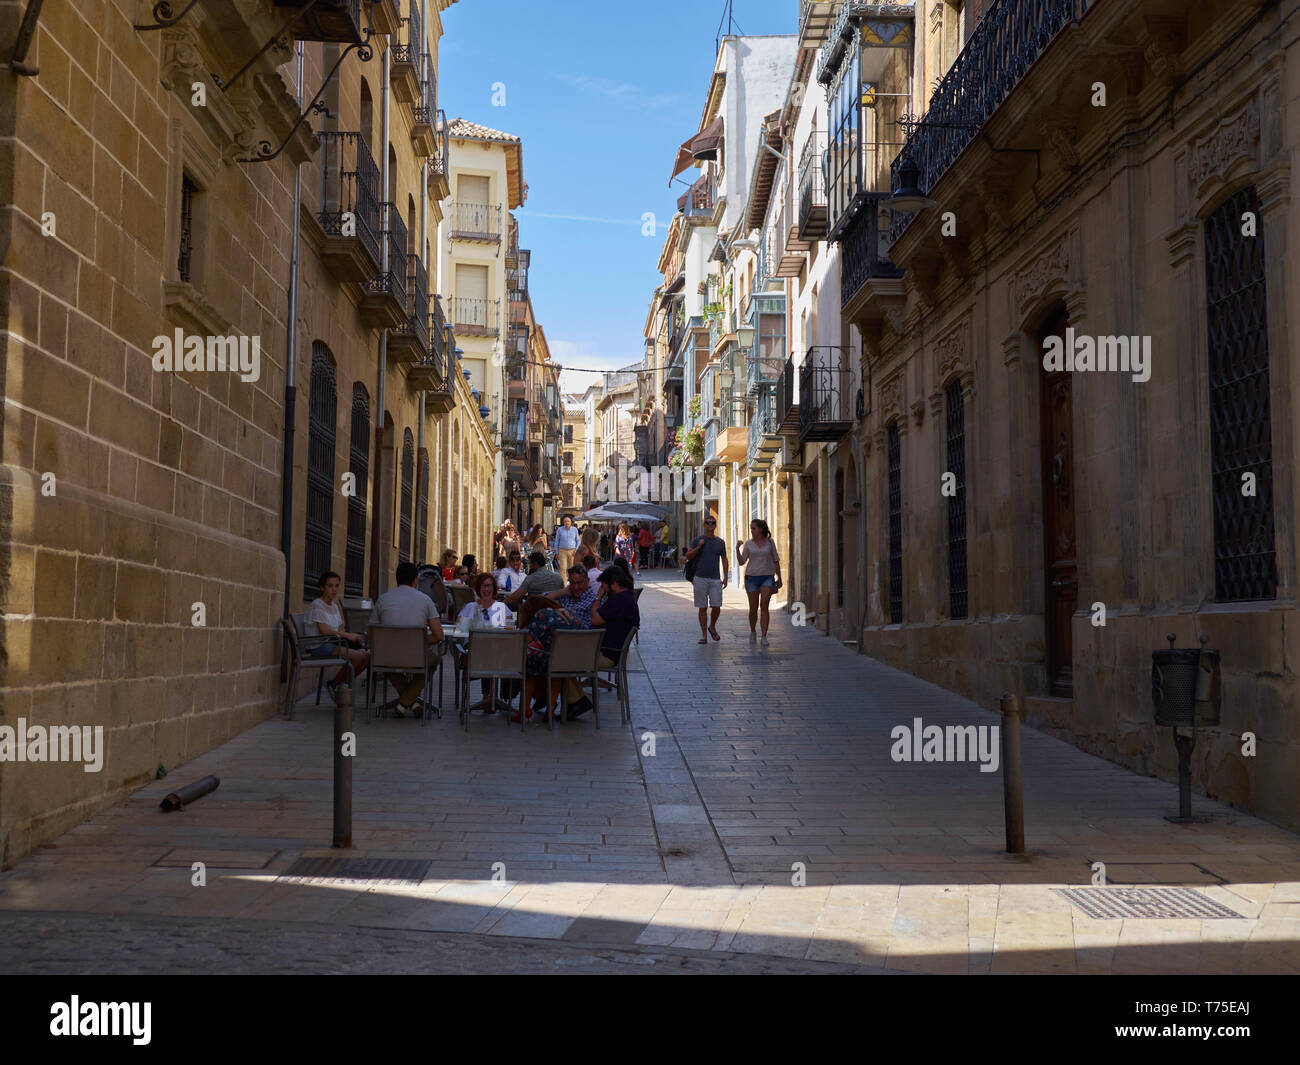 Pedestrian Street in Úbeda, Andalusia, Spain. - Stock Image